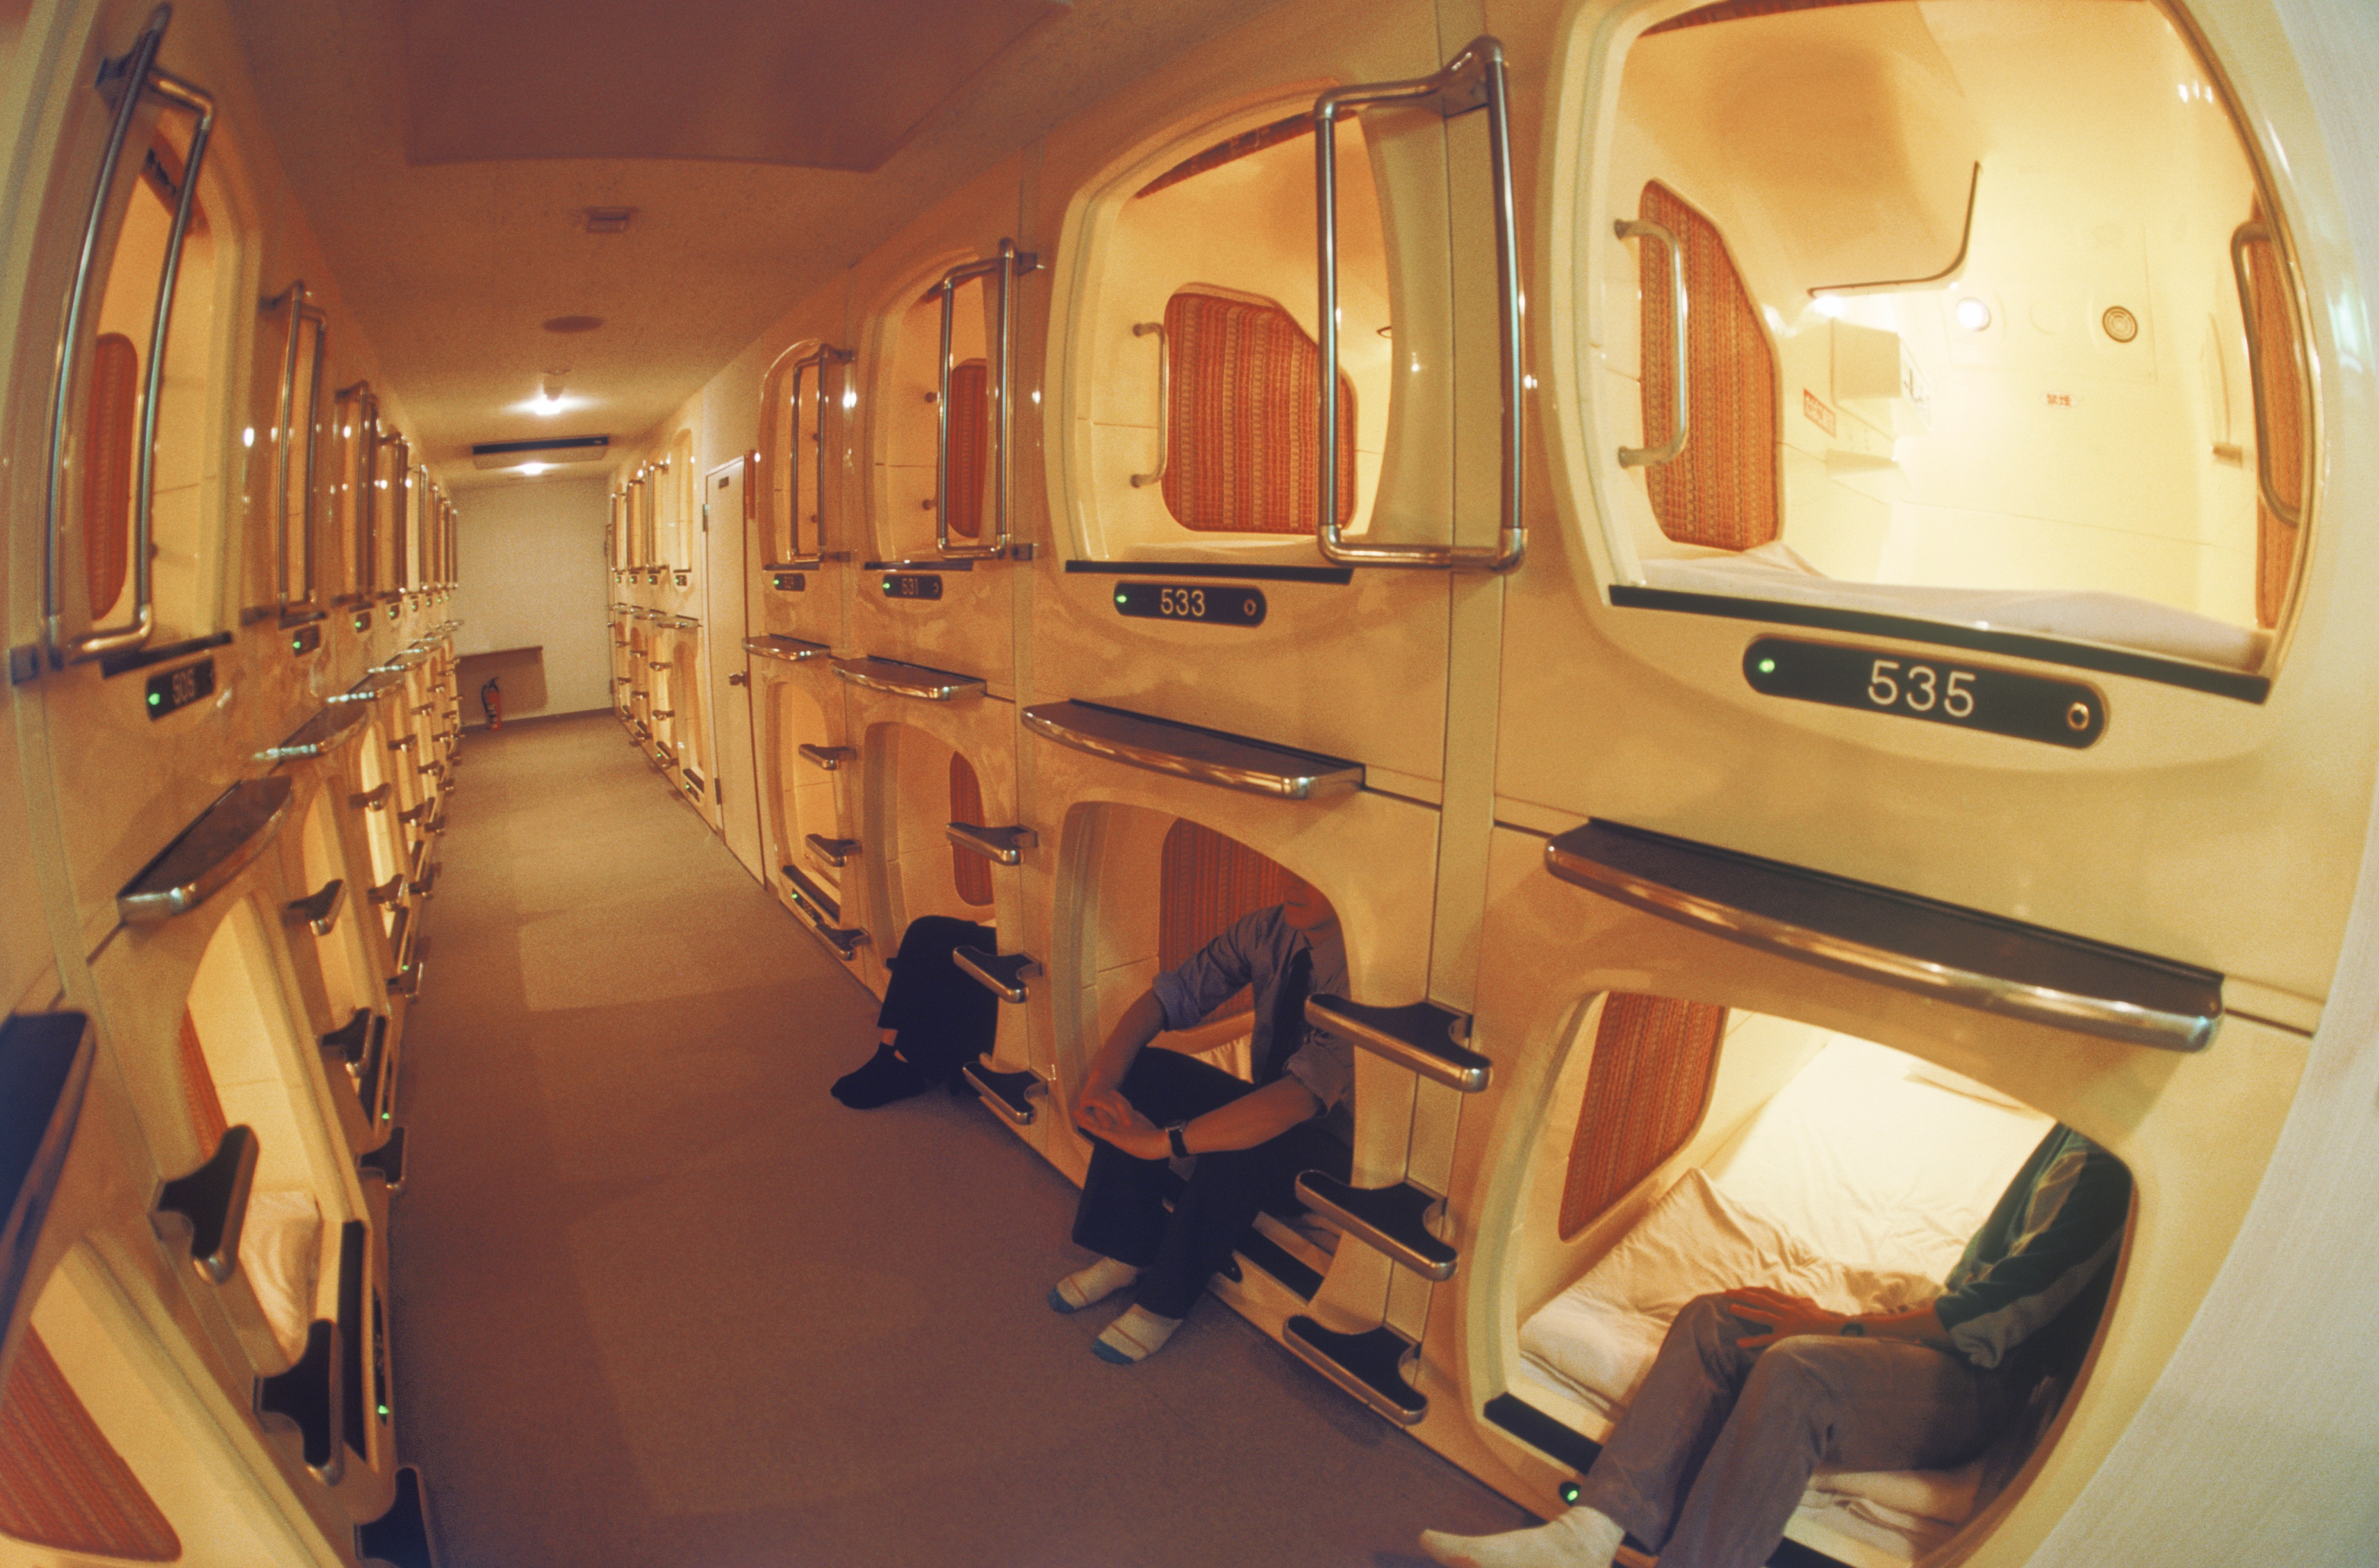 australia s first capsule hotel is opening in sydney sbs life. Black Bedroom Furniture Sets. Home Design Ideas